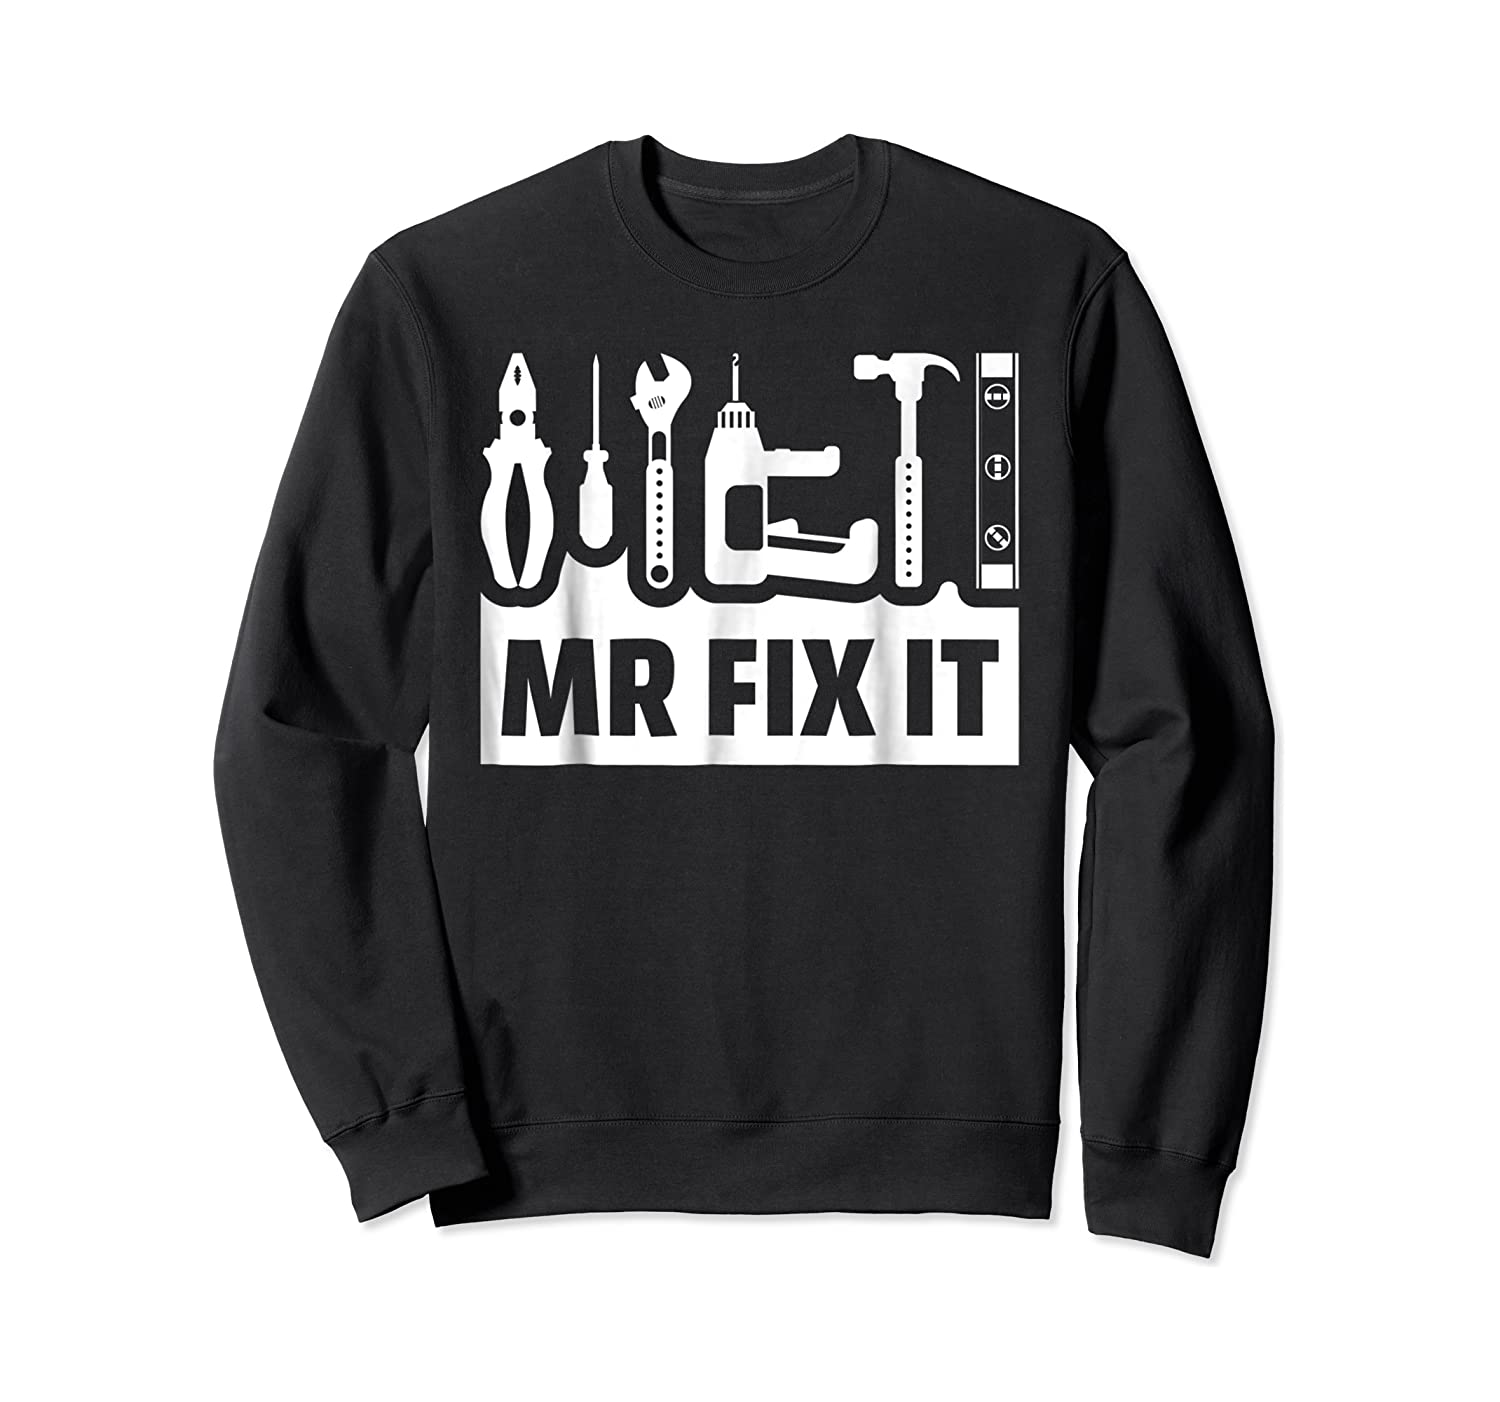 Dad Shirt Mr Fix It Funny T For Father Of A Son Tee Crewneck Sweater